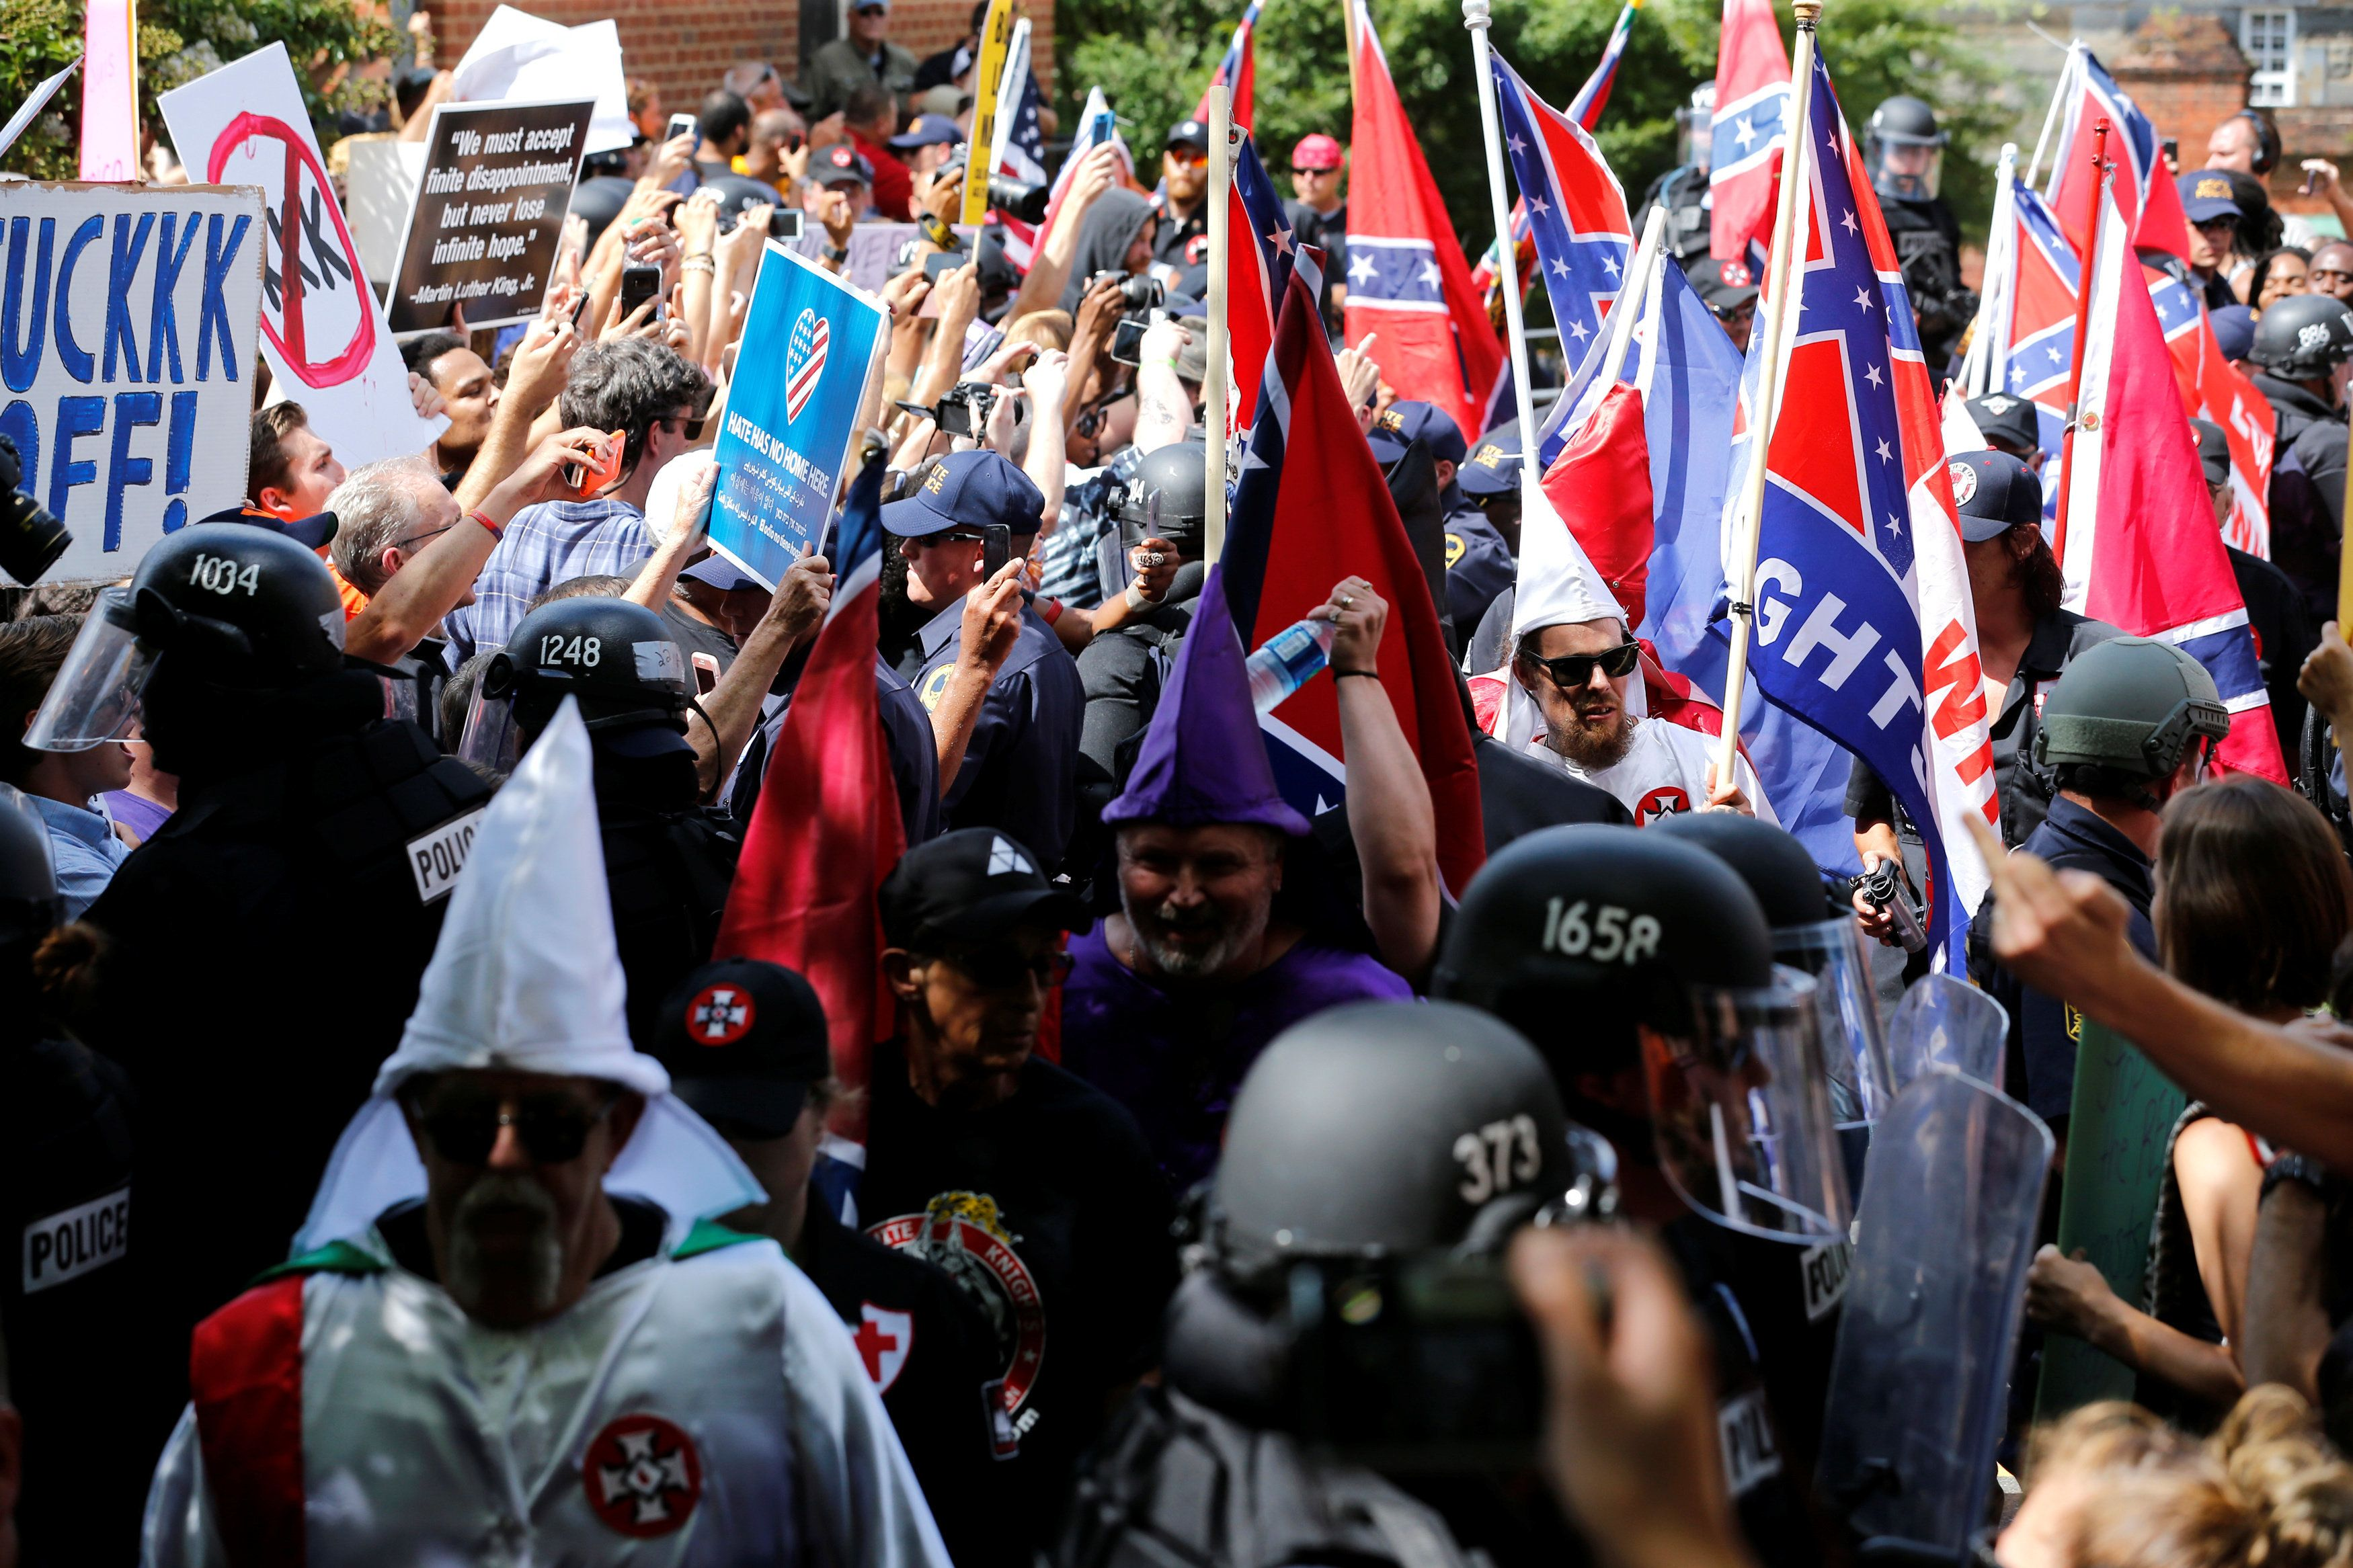 Riot police protect members of the Ku Klux Klan from counter-protesters as they arrive to rally in support of Confederate monuments in Charlottesville, Virginia, U.S. July 8, 2017. REUTERS/Jonathan Ernst